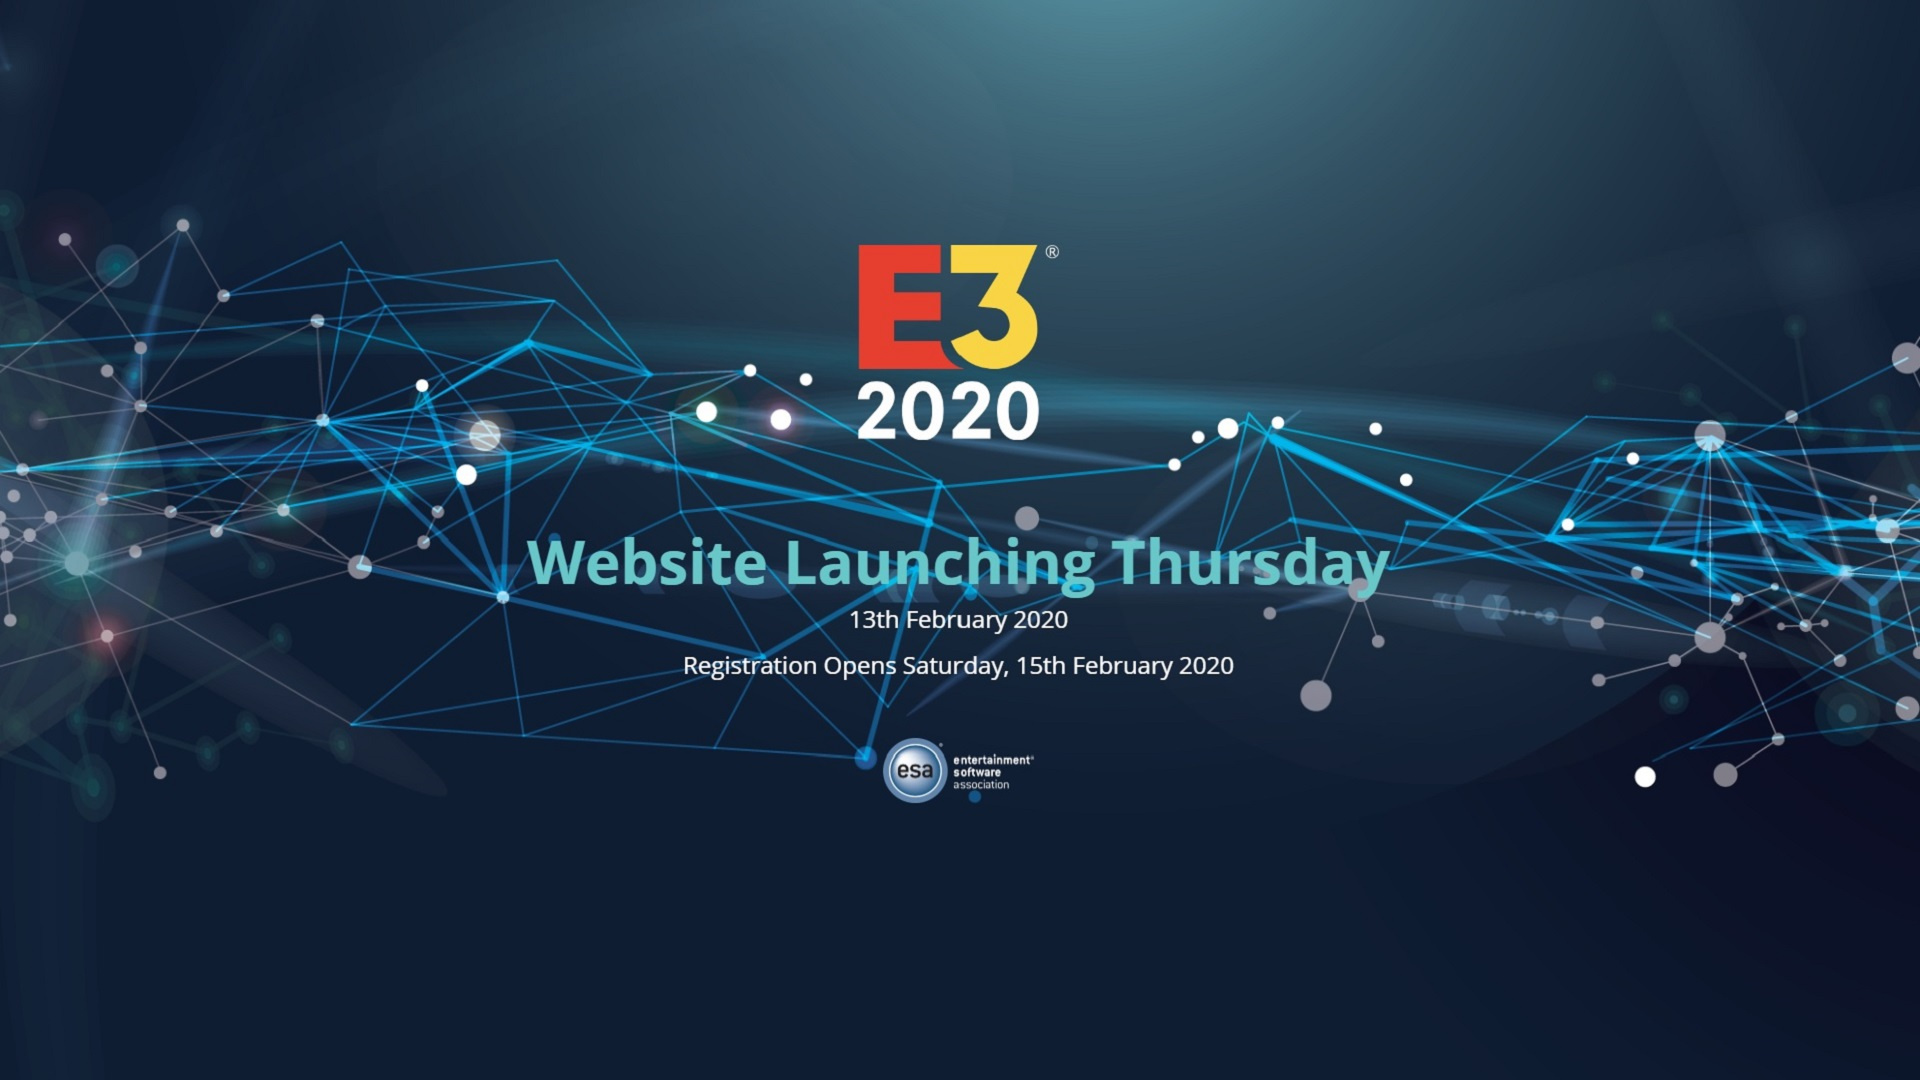 E3 2020 Gets New Details And A Brand New Website